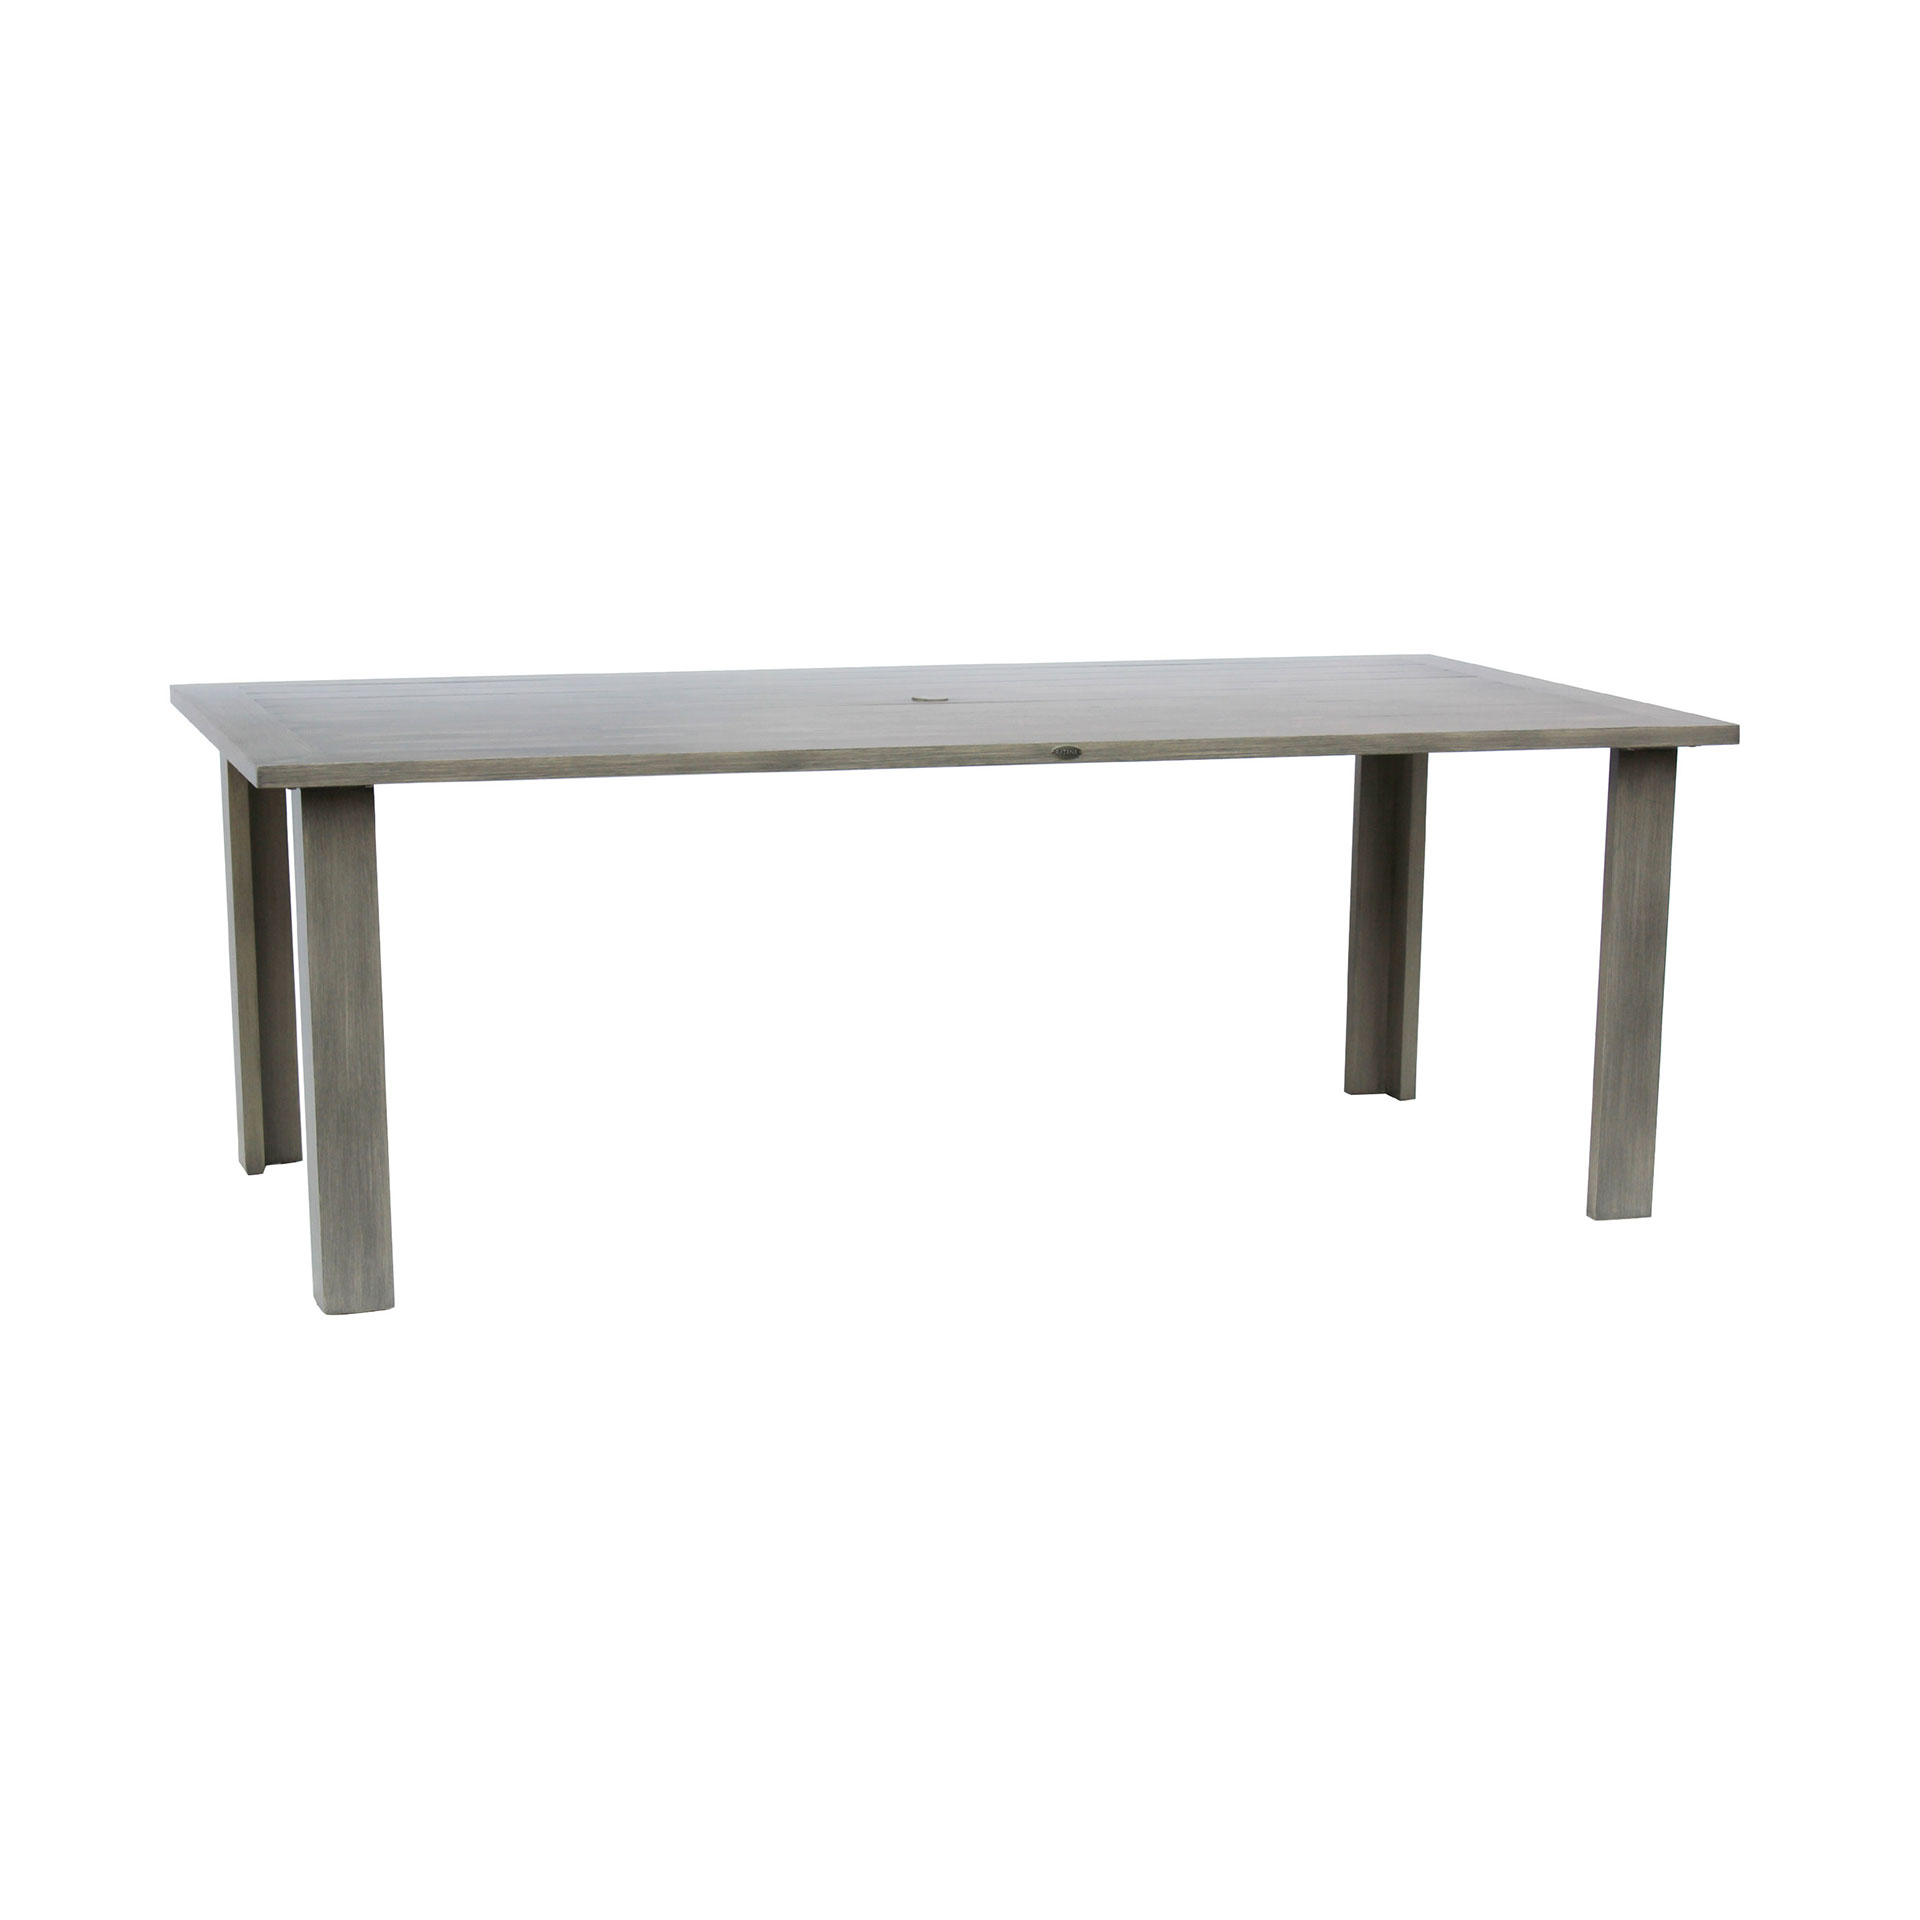 Ratana Limo 84x42 Quot Rectangular Dining Table Leisure Living